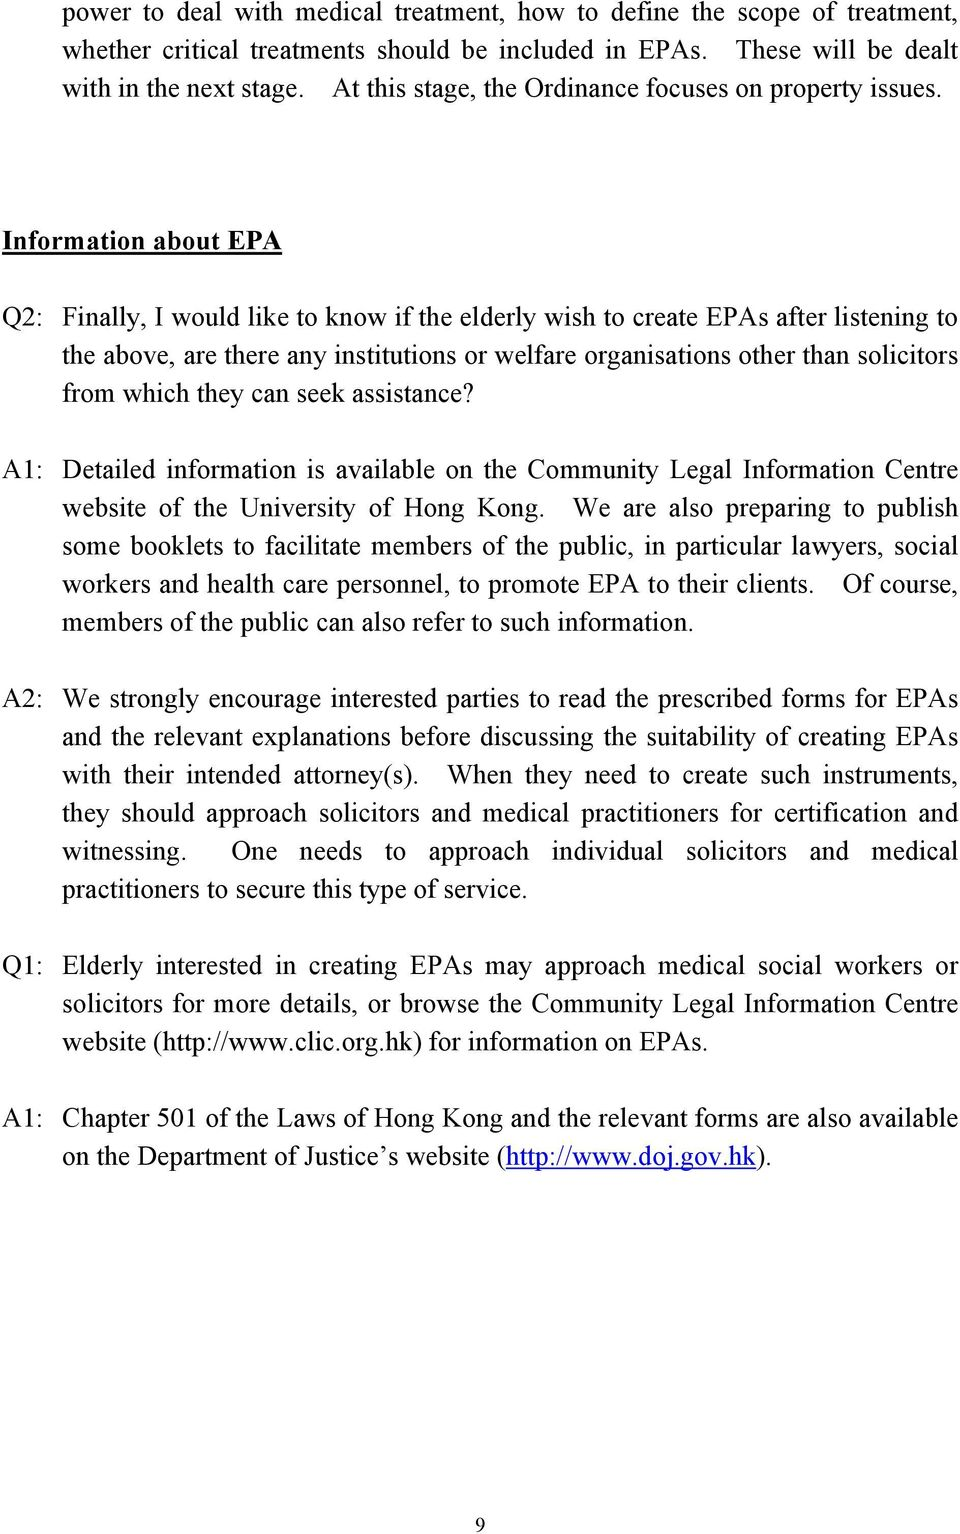 Information about EPA Q2: Finally, I would like to know if the elderly wish to create EPAs after listening to the above, are there any institutions or welfare organisations other than solicitors from